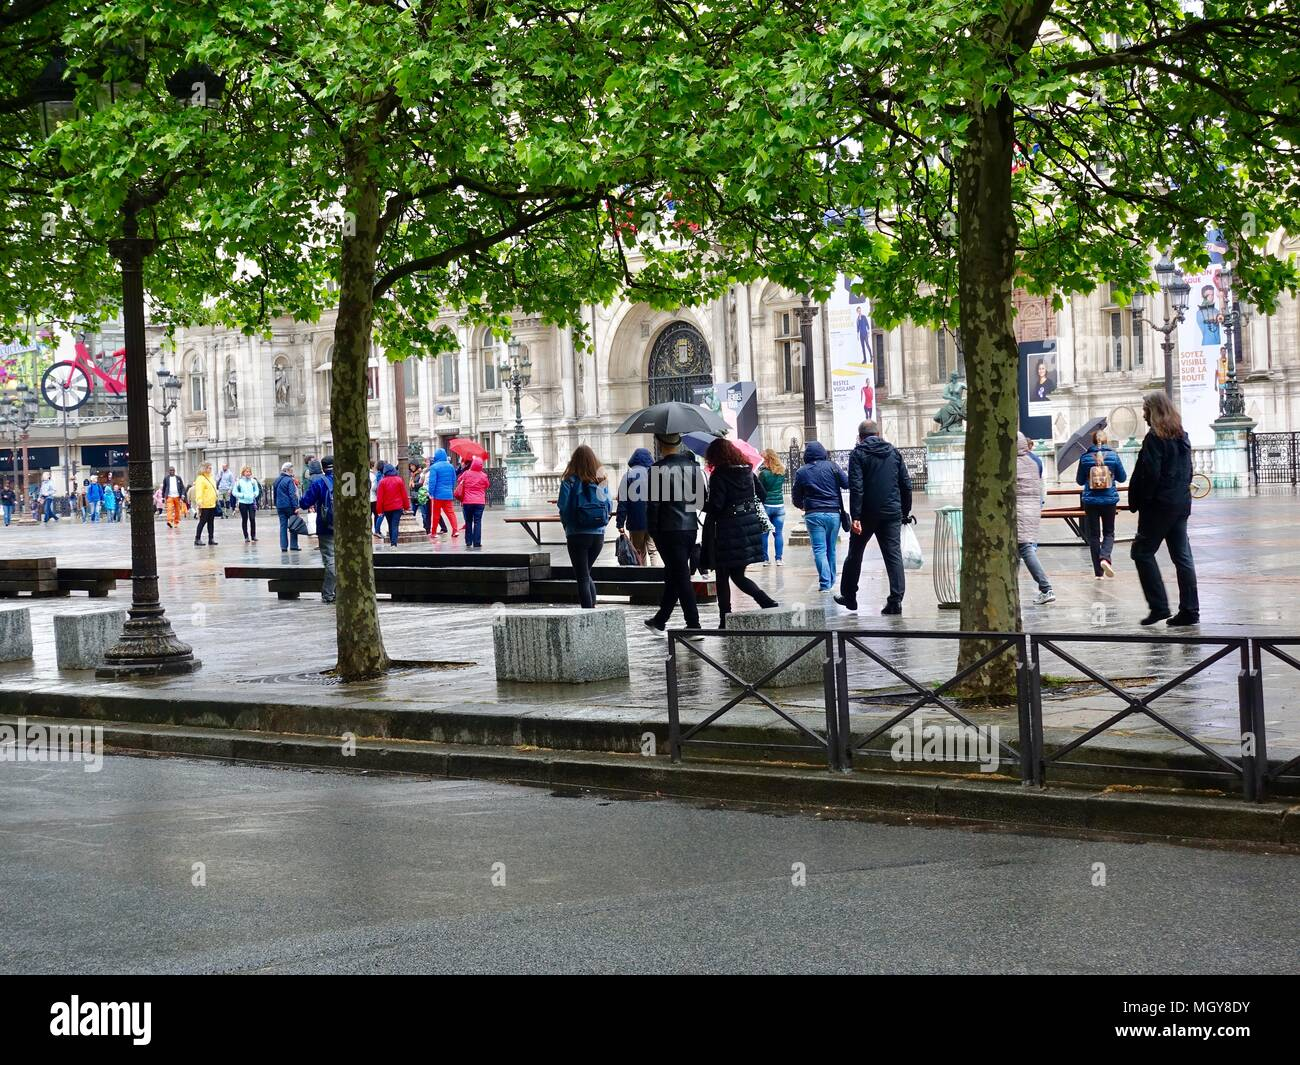 A crowd of tourists, wearing rain jackets and carrying umbrellas, walk in the rain across the plaza in front of the Hôtel de Ville, Paris, France. - Stock Image